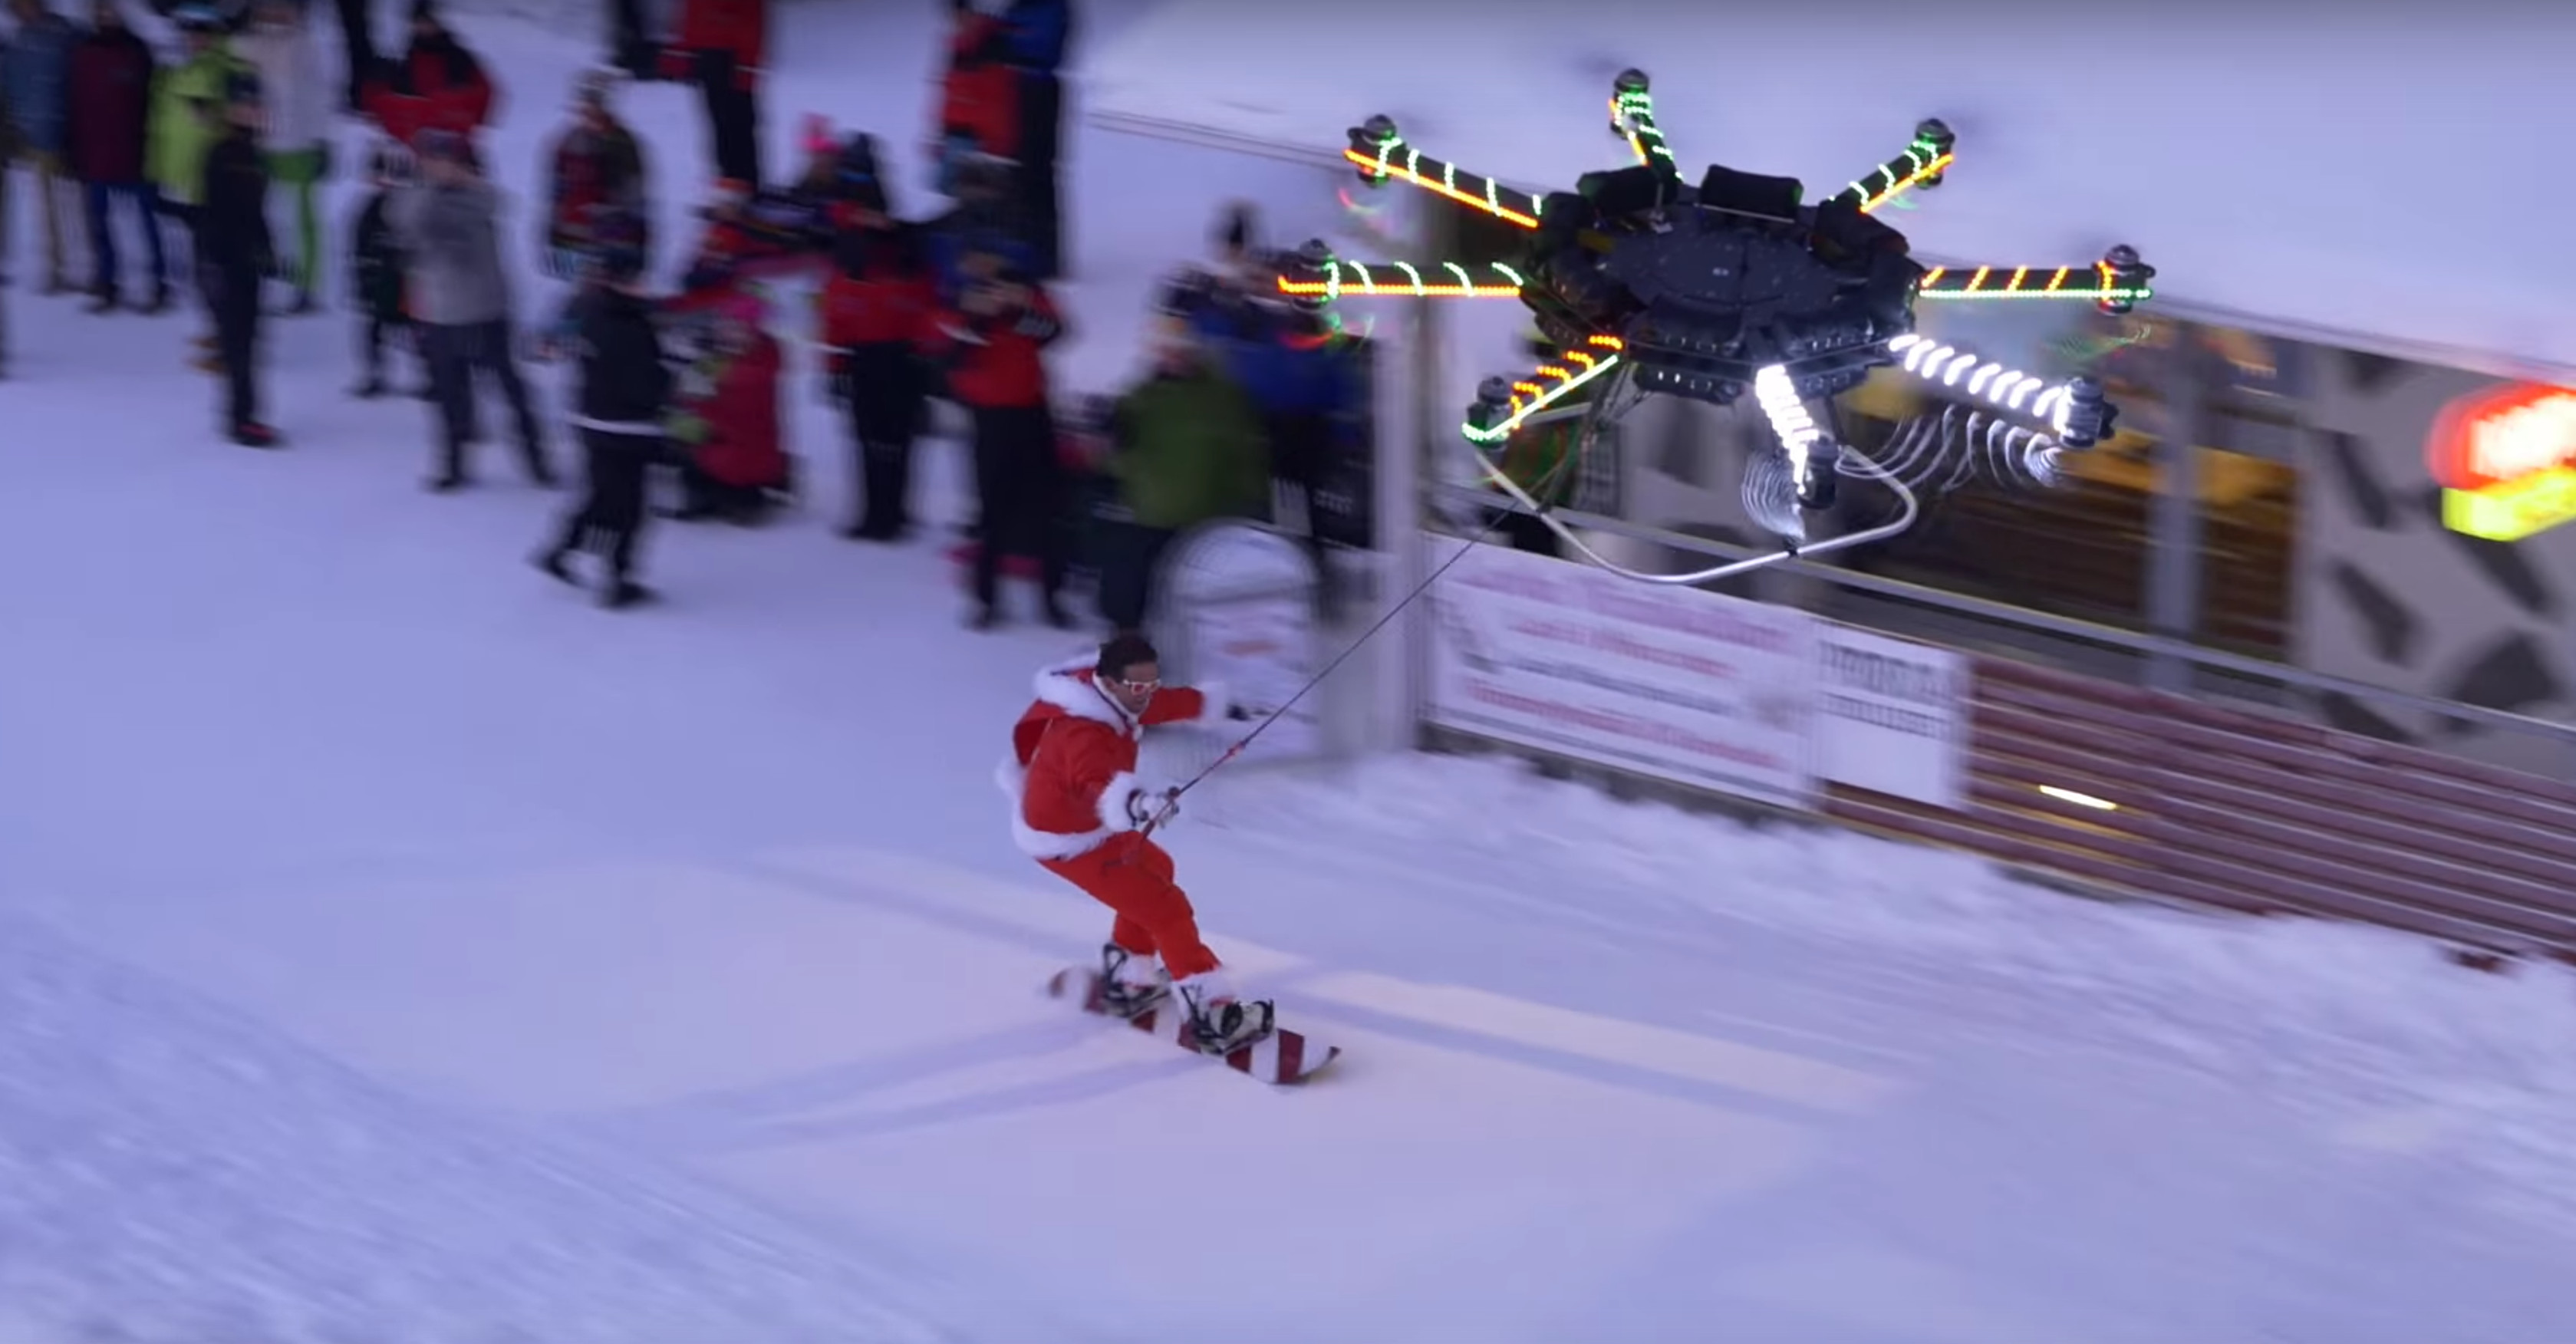 watch a human carrying drone lift a snowboarder off a mountain